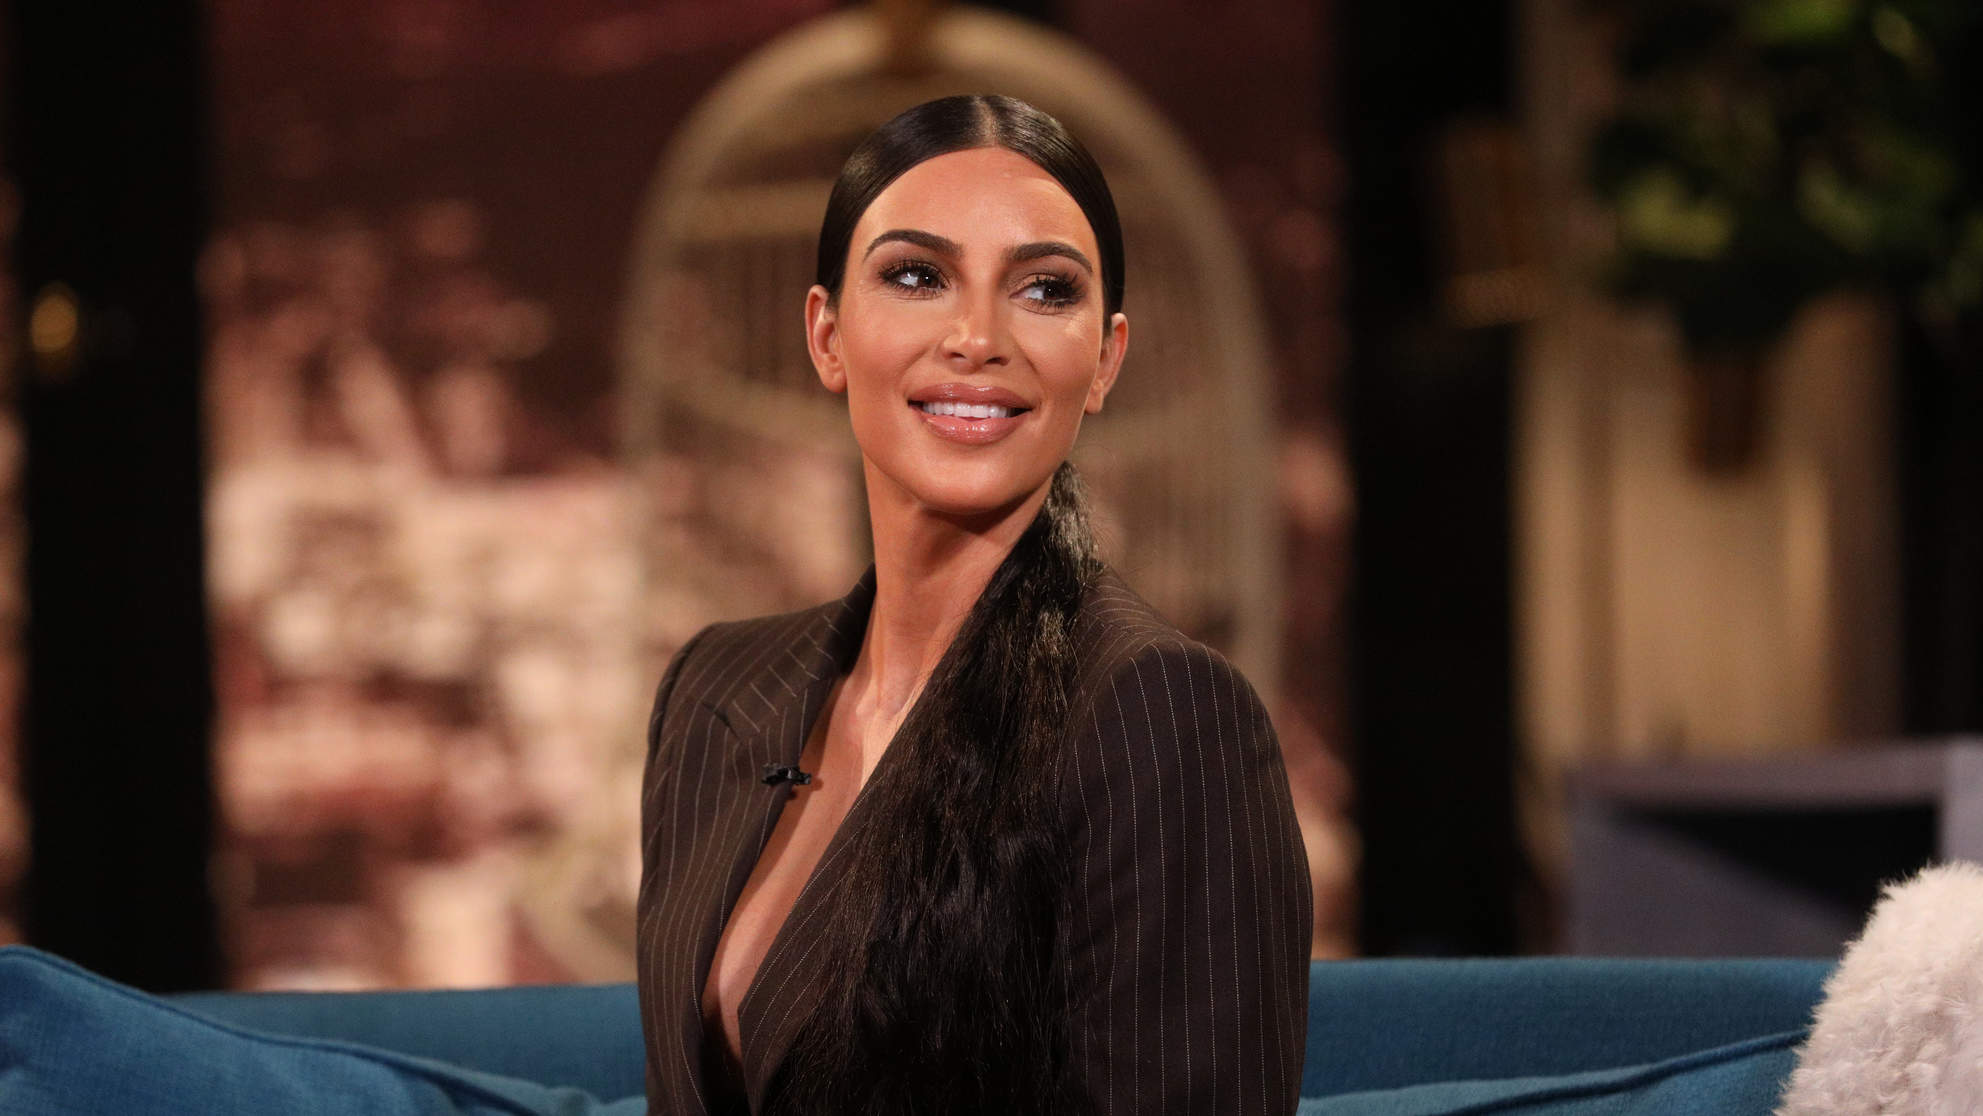 Kim Kardashian Just Responded to the Backlash Over Her Shapewear Line